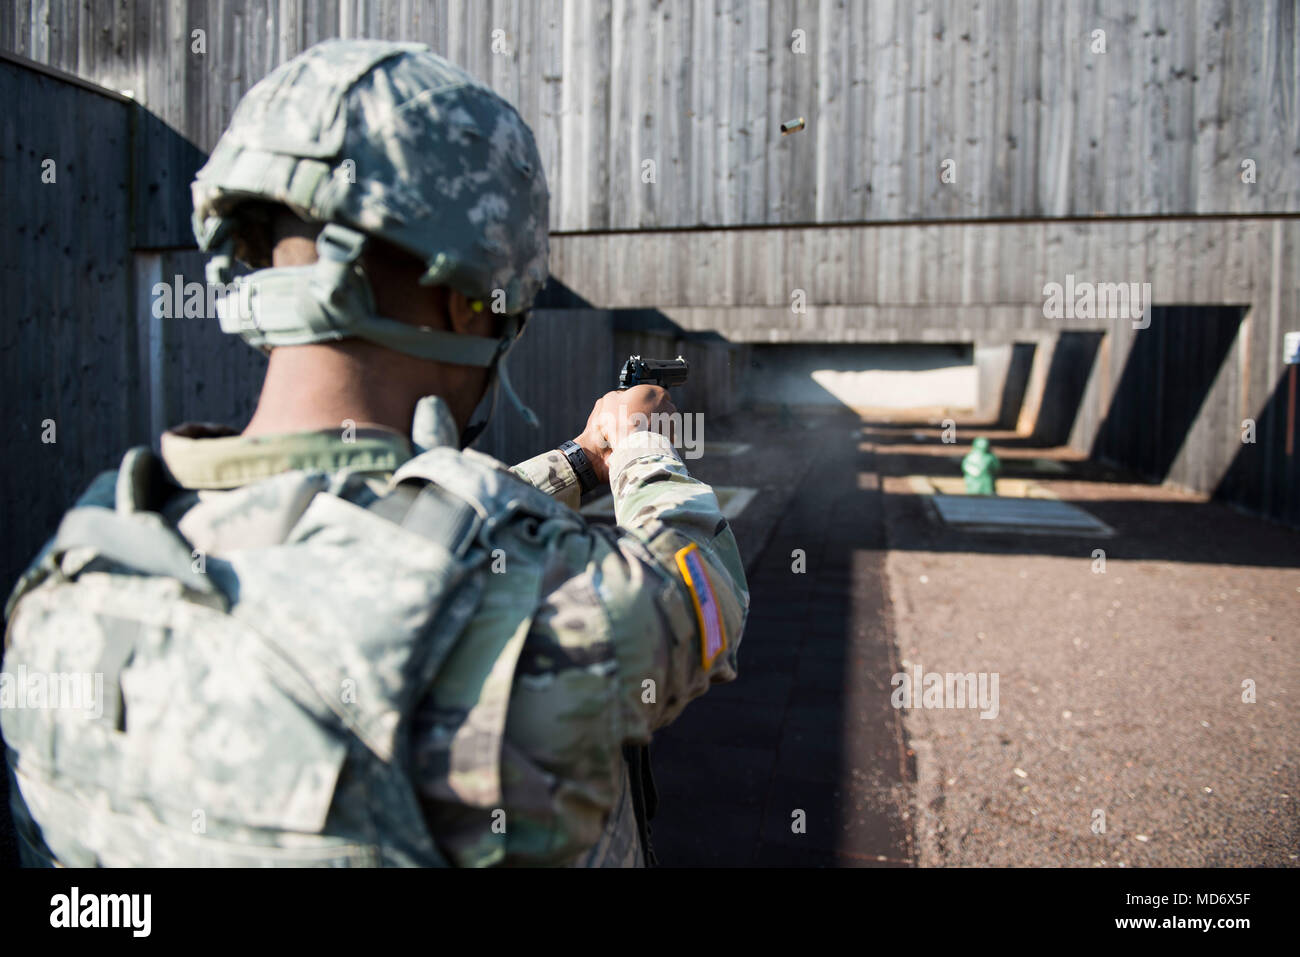 81e1db9be3f M9 Pistol Stock Photos   M9 Pistol Stock Images - Alamy